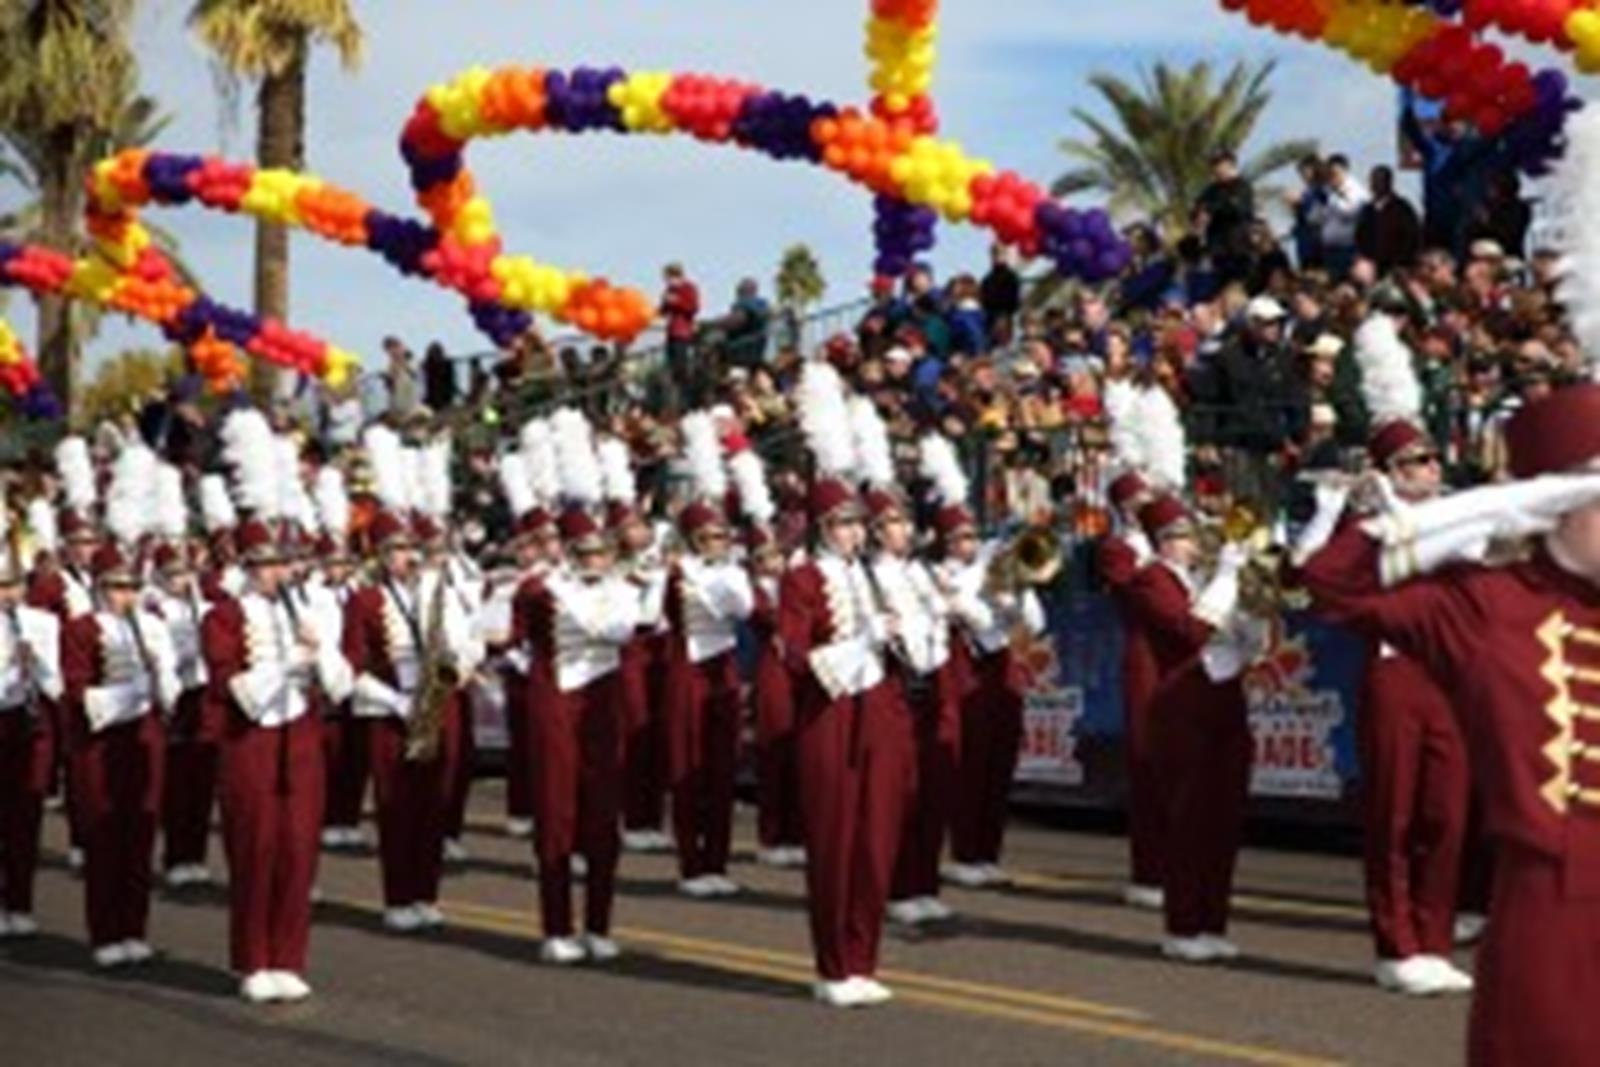 The Fiesta Bowl Parade. Image from Slingshot Photography.